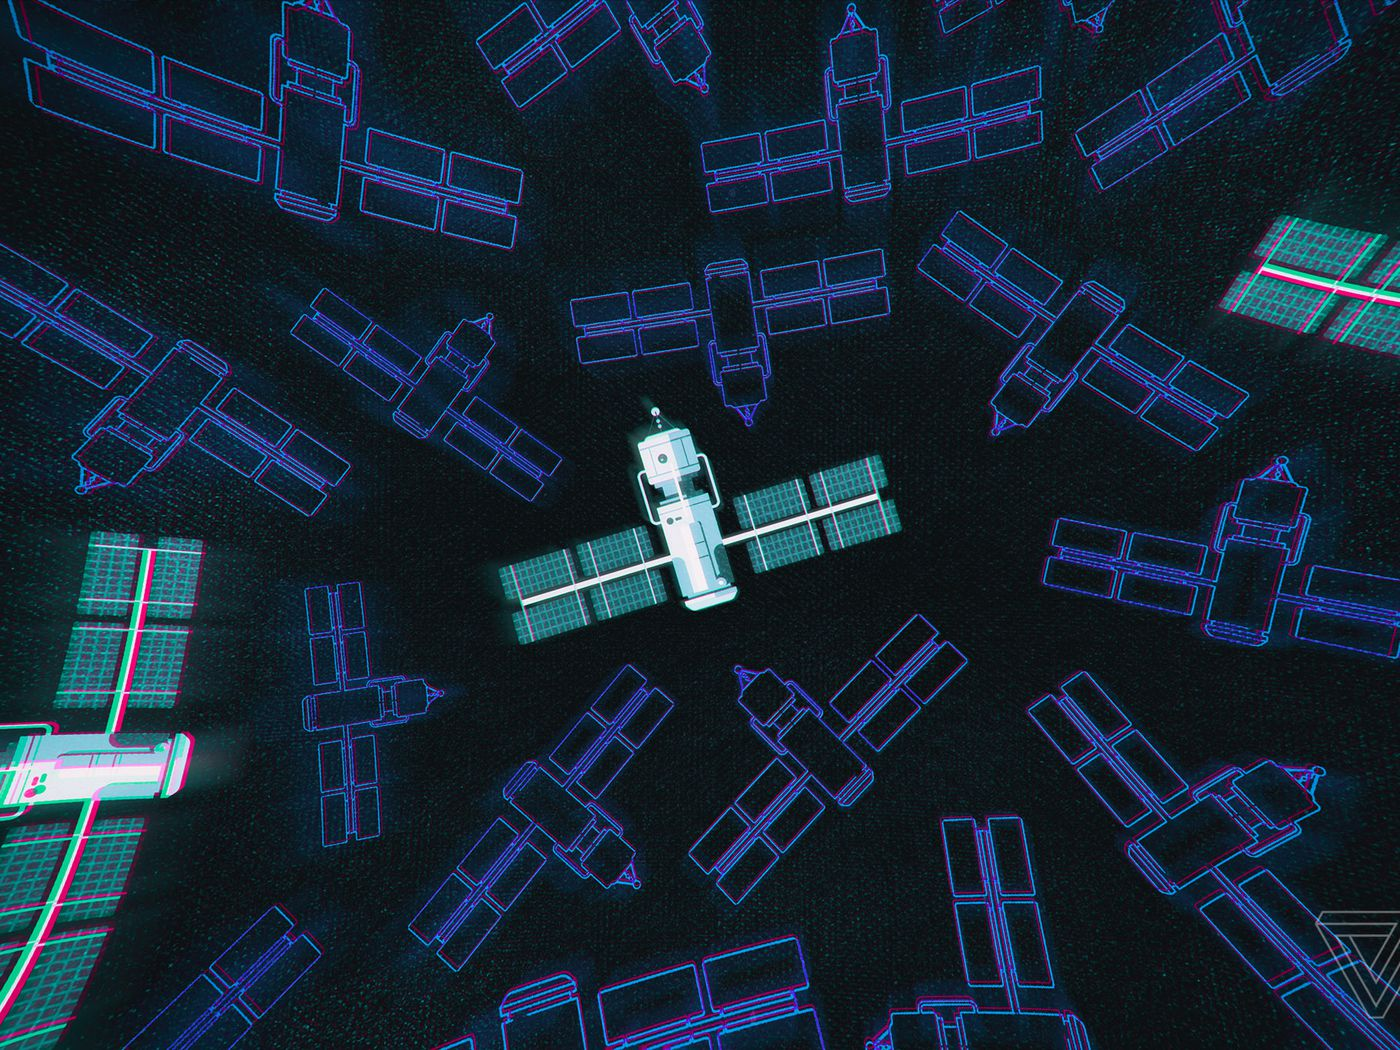 A Russian Satellite Seems To Be Tailing A Us Spy Satellite In